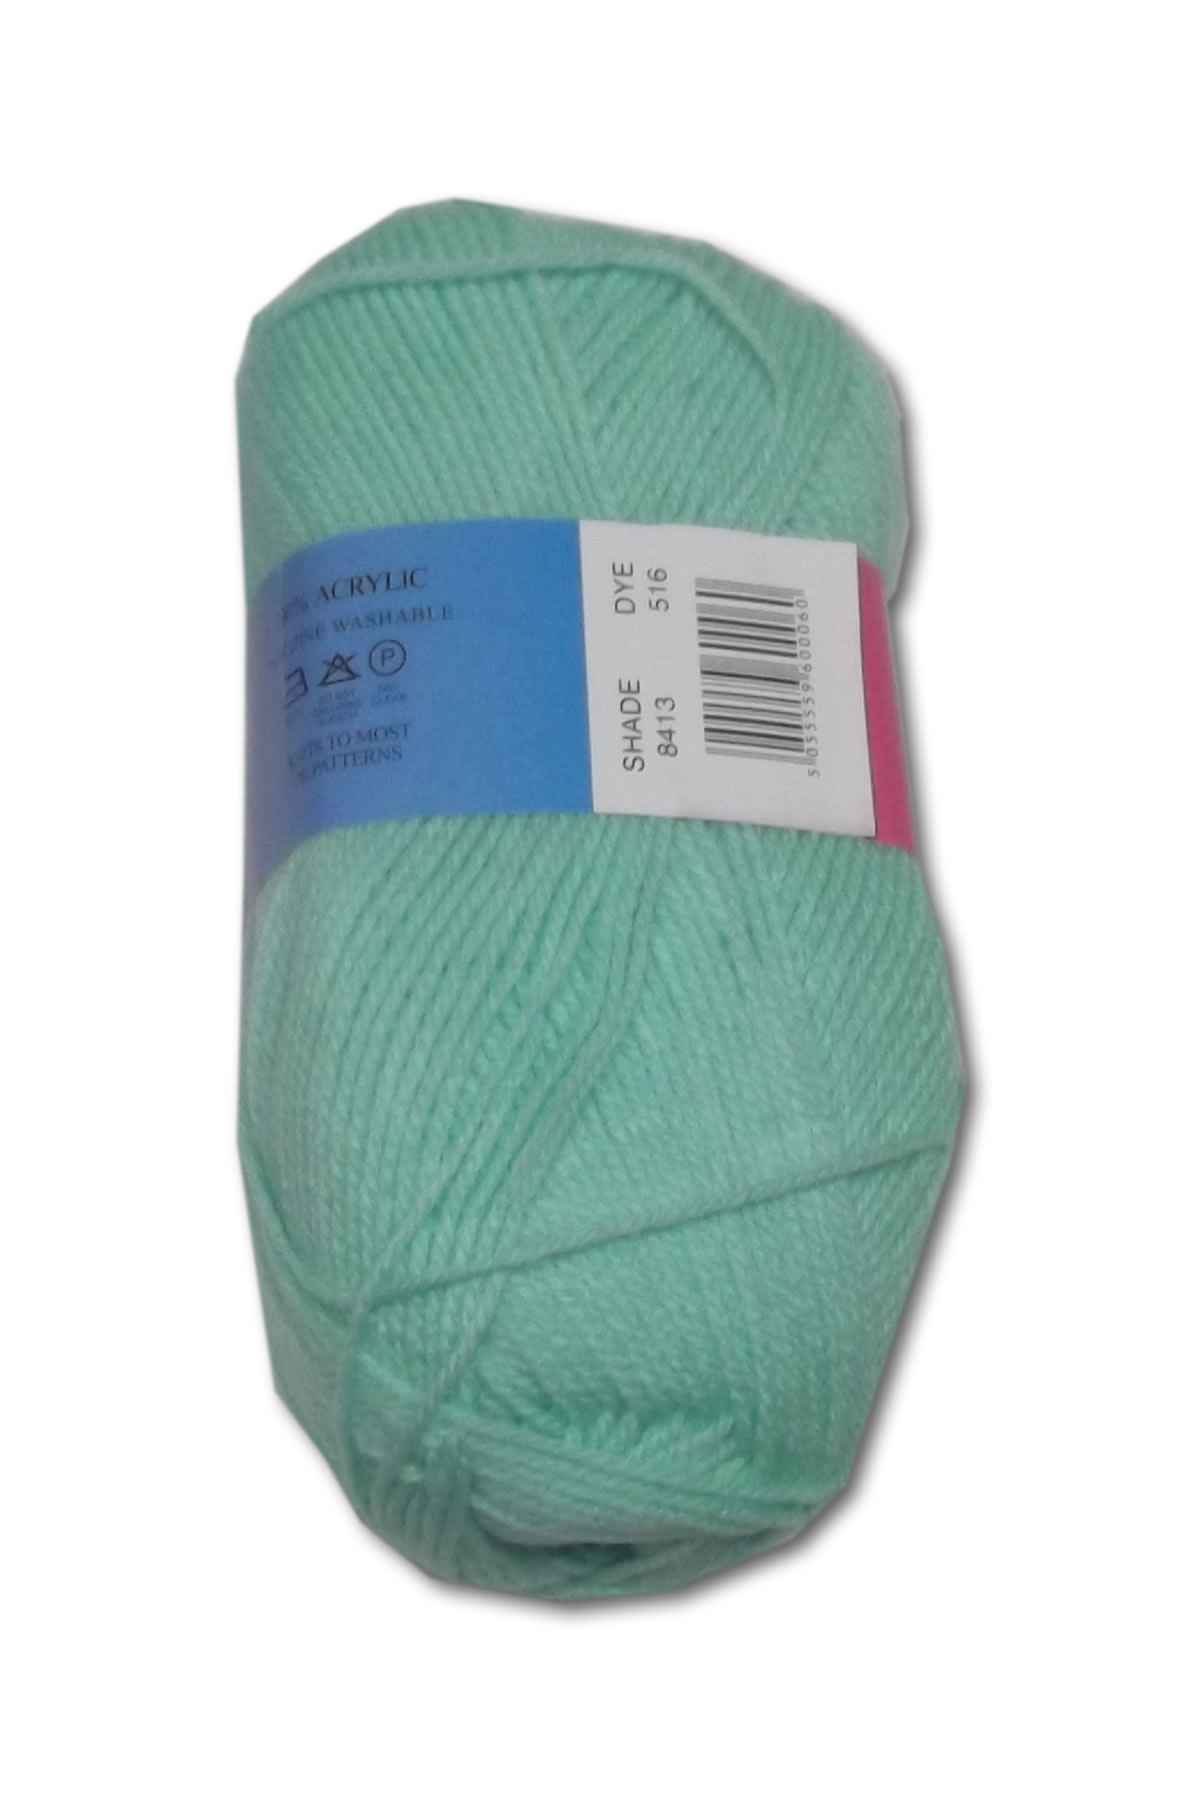 Quality wool many shades 100g ball knit knitting home baby for Craft with woolen thread